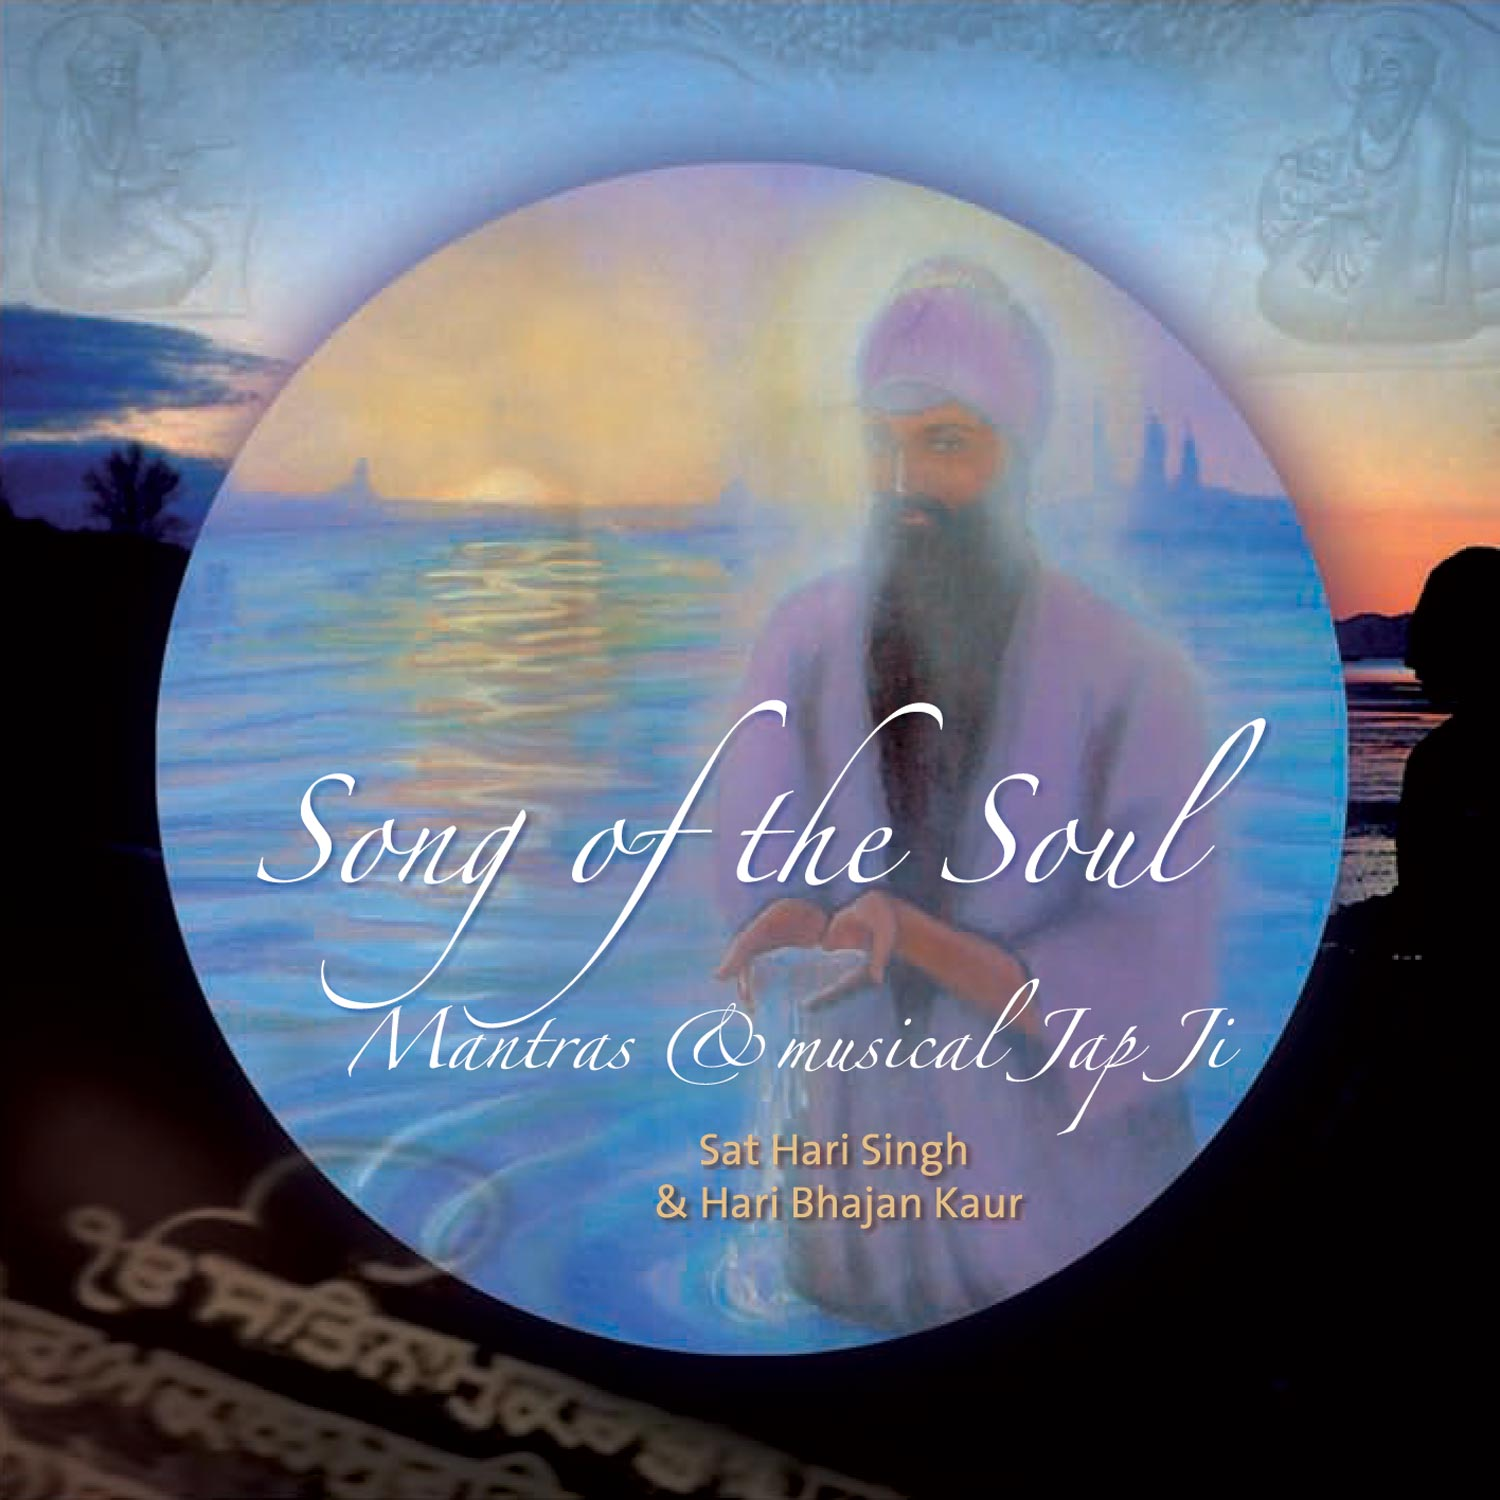 Song of the Soul - Sat Hari Singh & Hari Bhajan Kaur CD